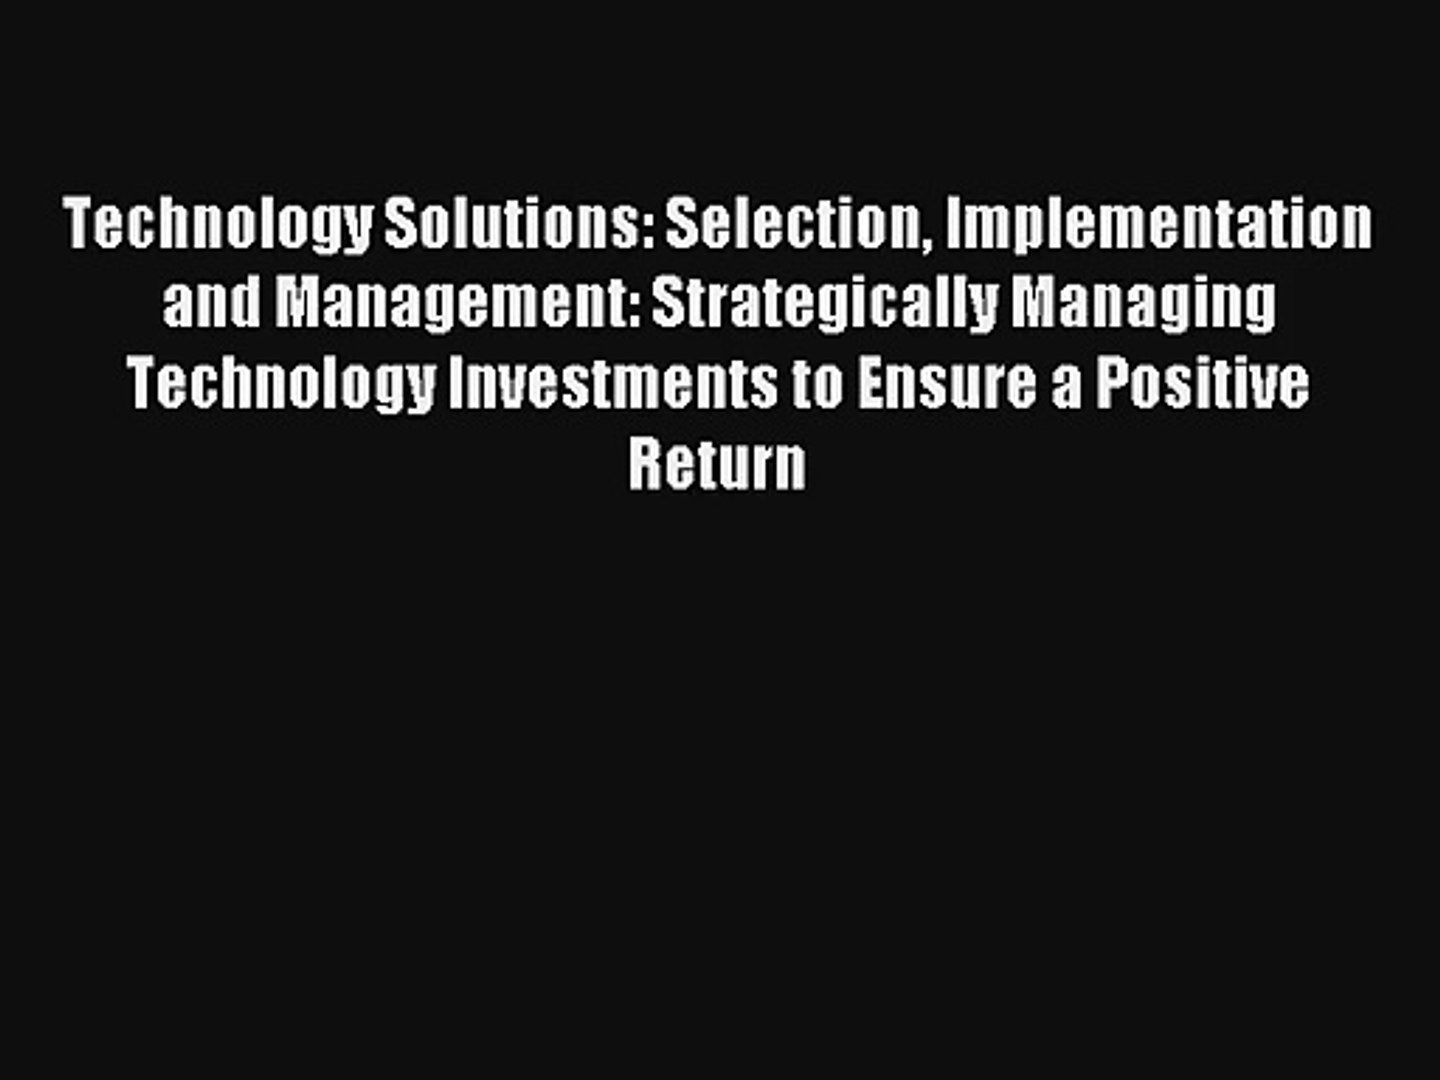 Technology Solutions: Selection Implementation and Management: Strategically Managing Technology